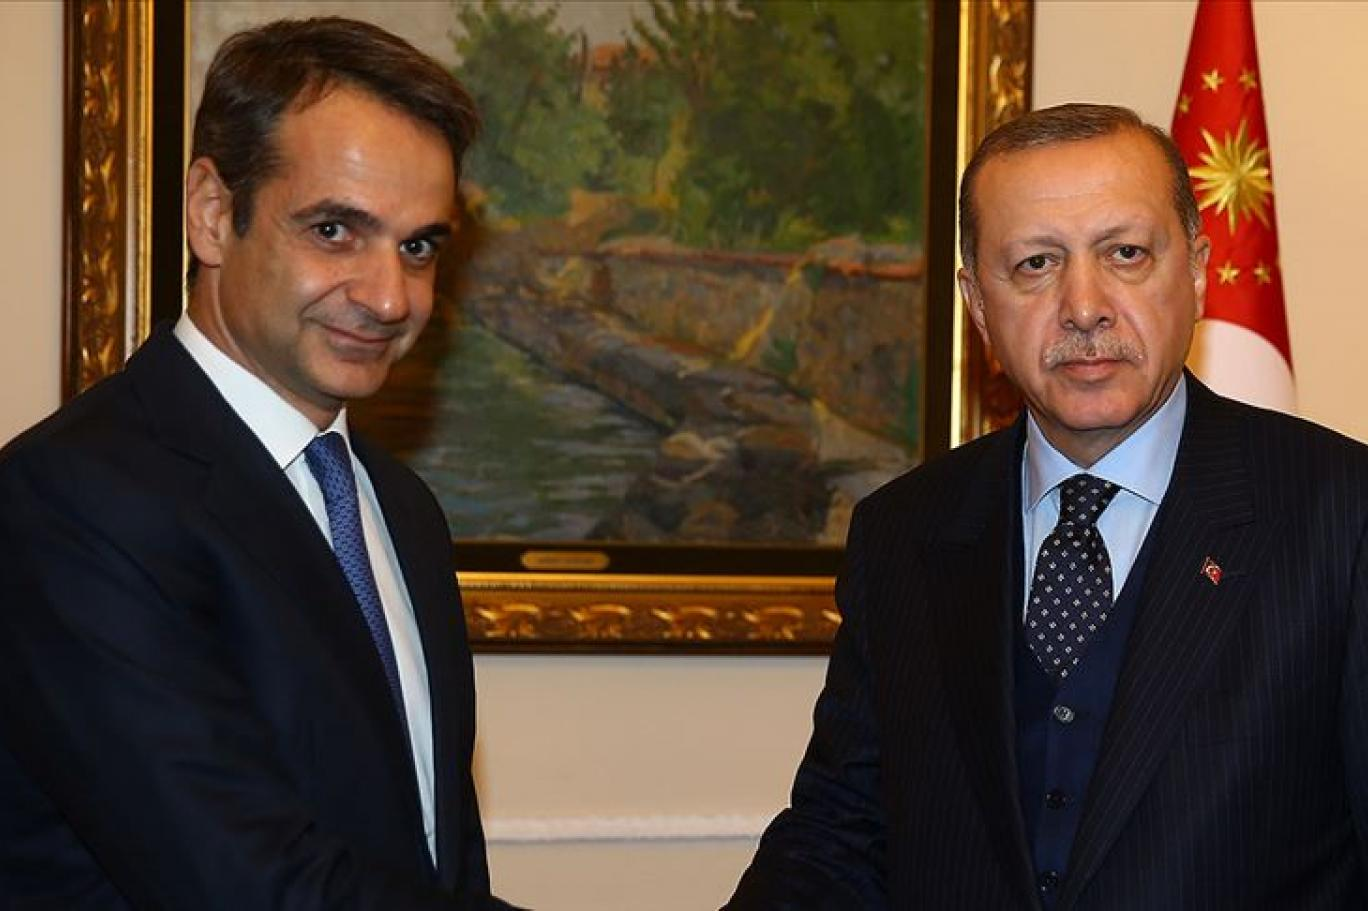 Meeting with Turkish president likely: Greek premier